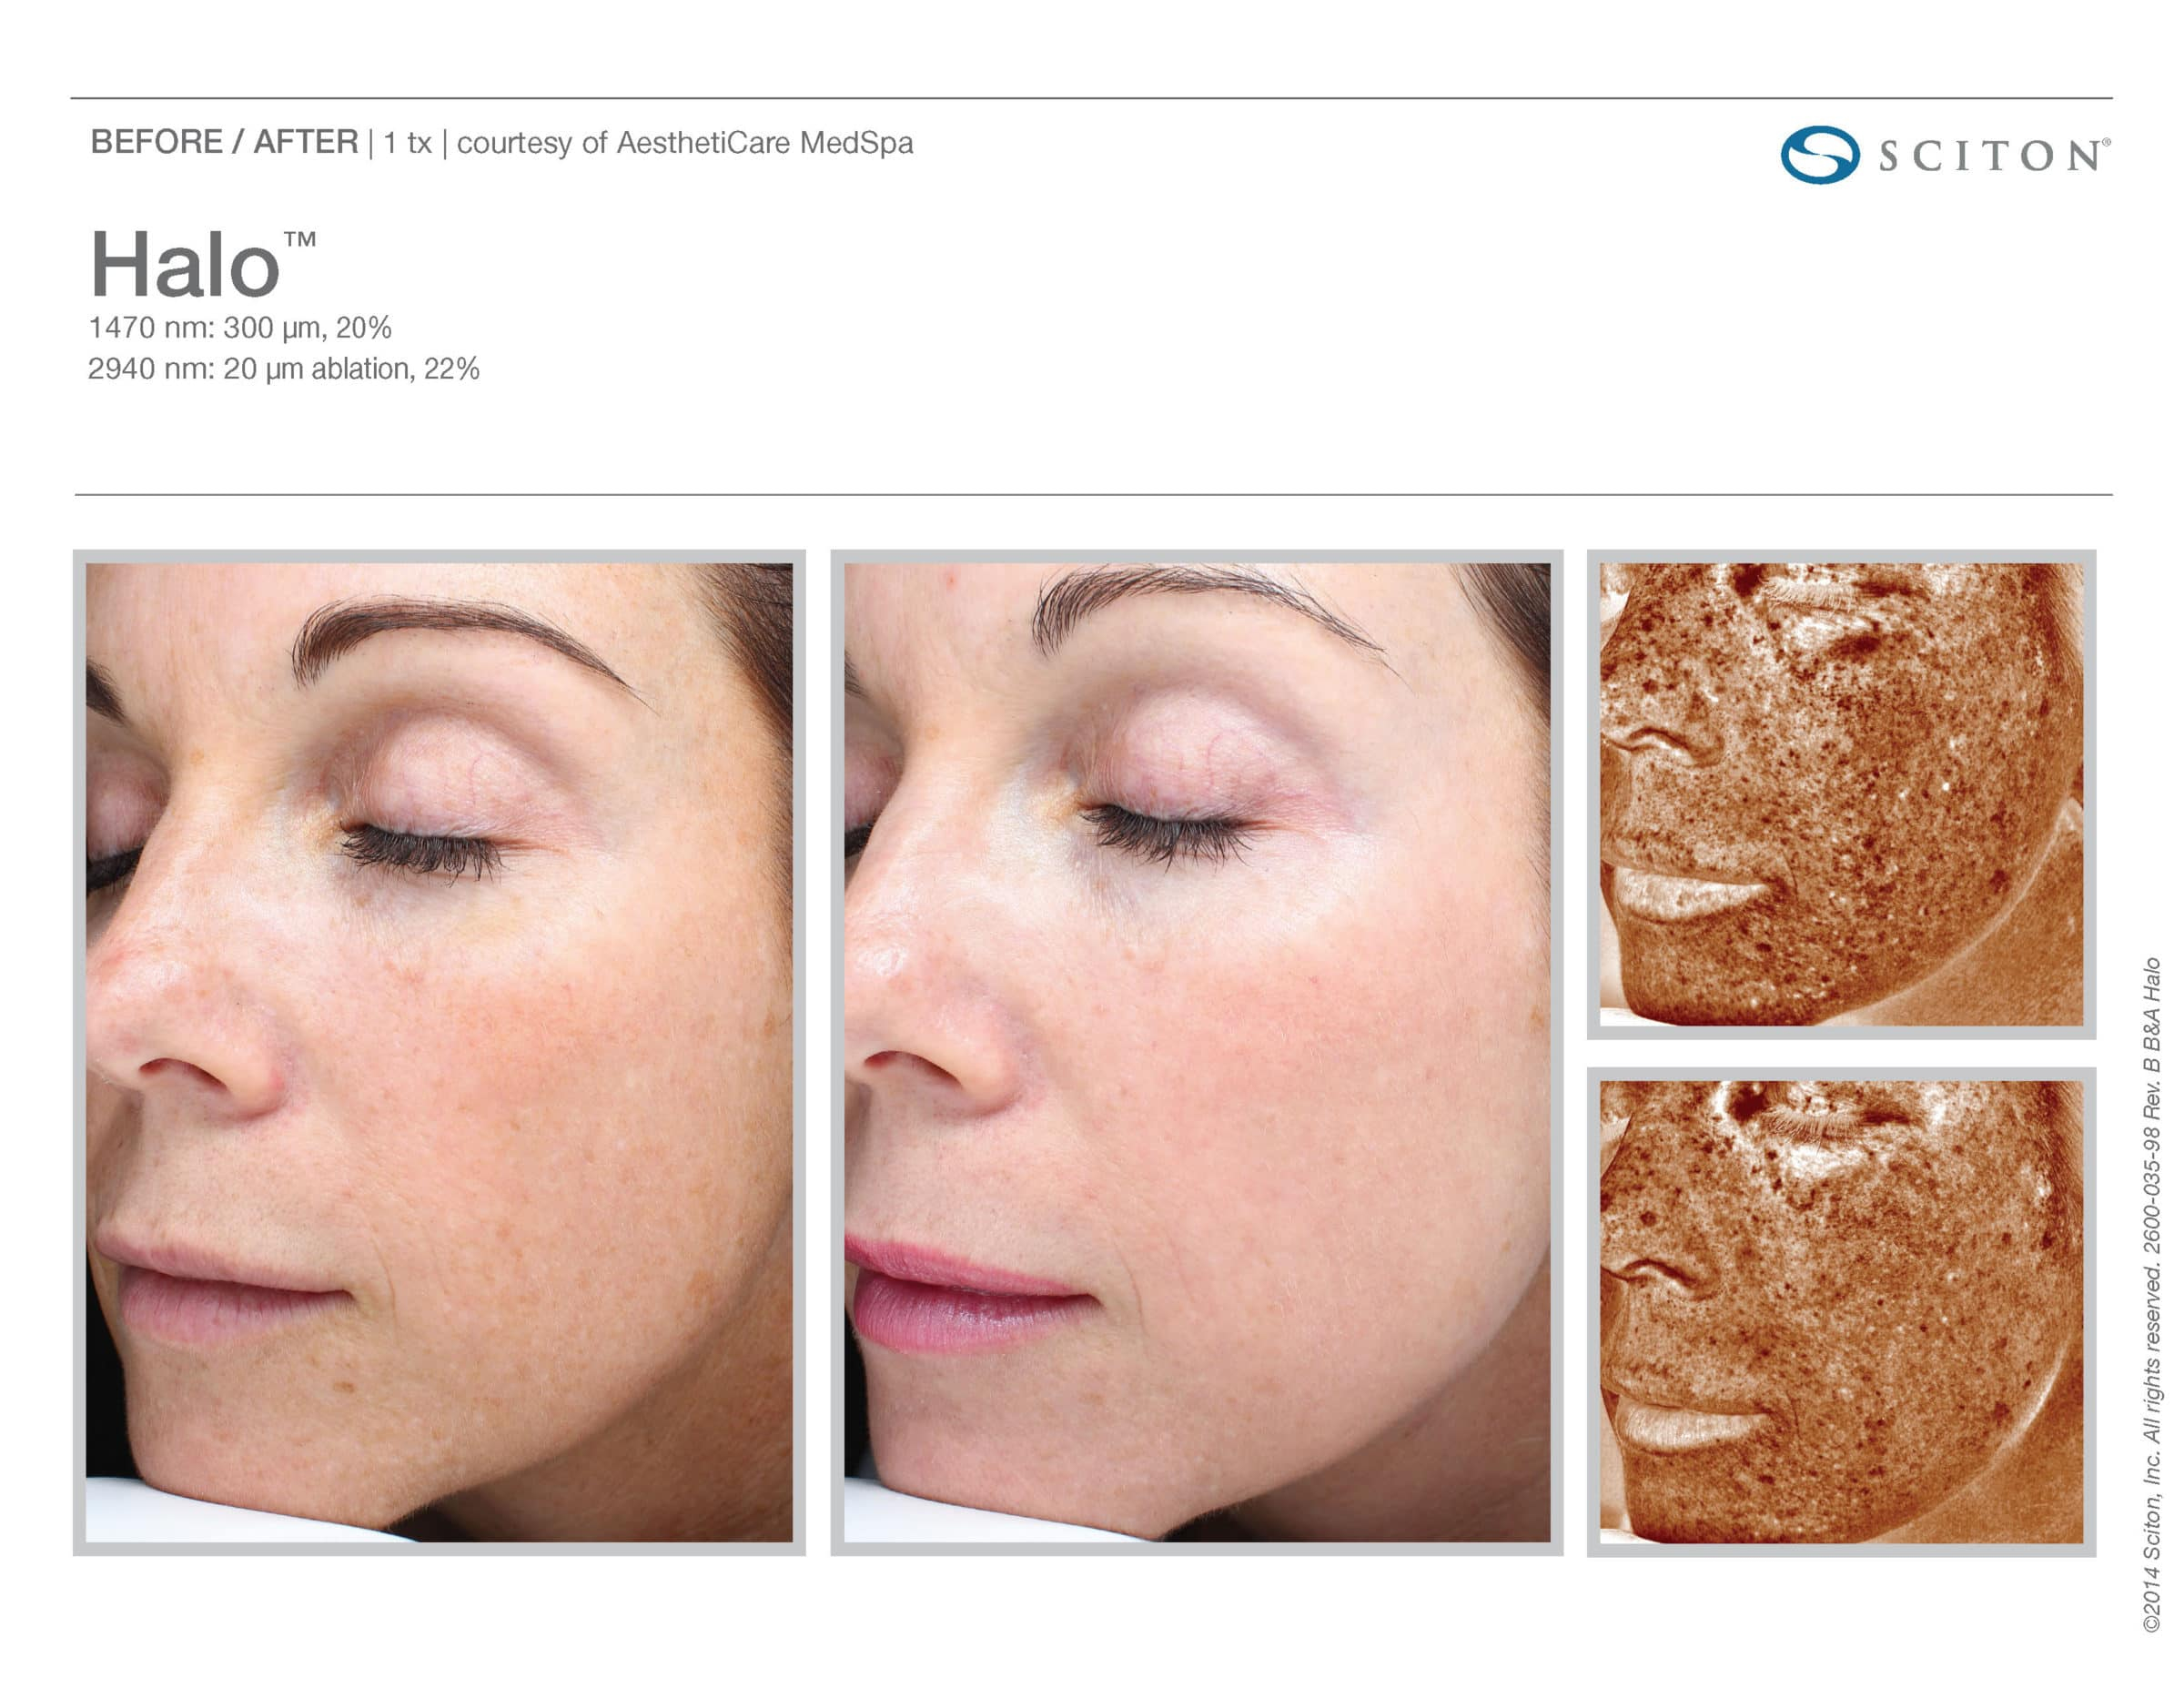 Before And After From Halo Fractional Laser. Halo Is Available At Well Medical Arts In Seattle. Call 206-935-5689 To Schedule Your Treatment Now.